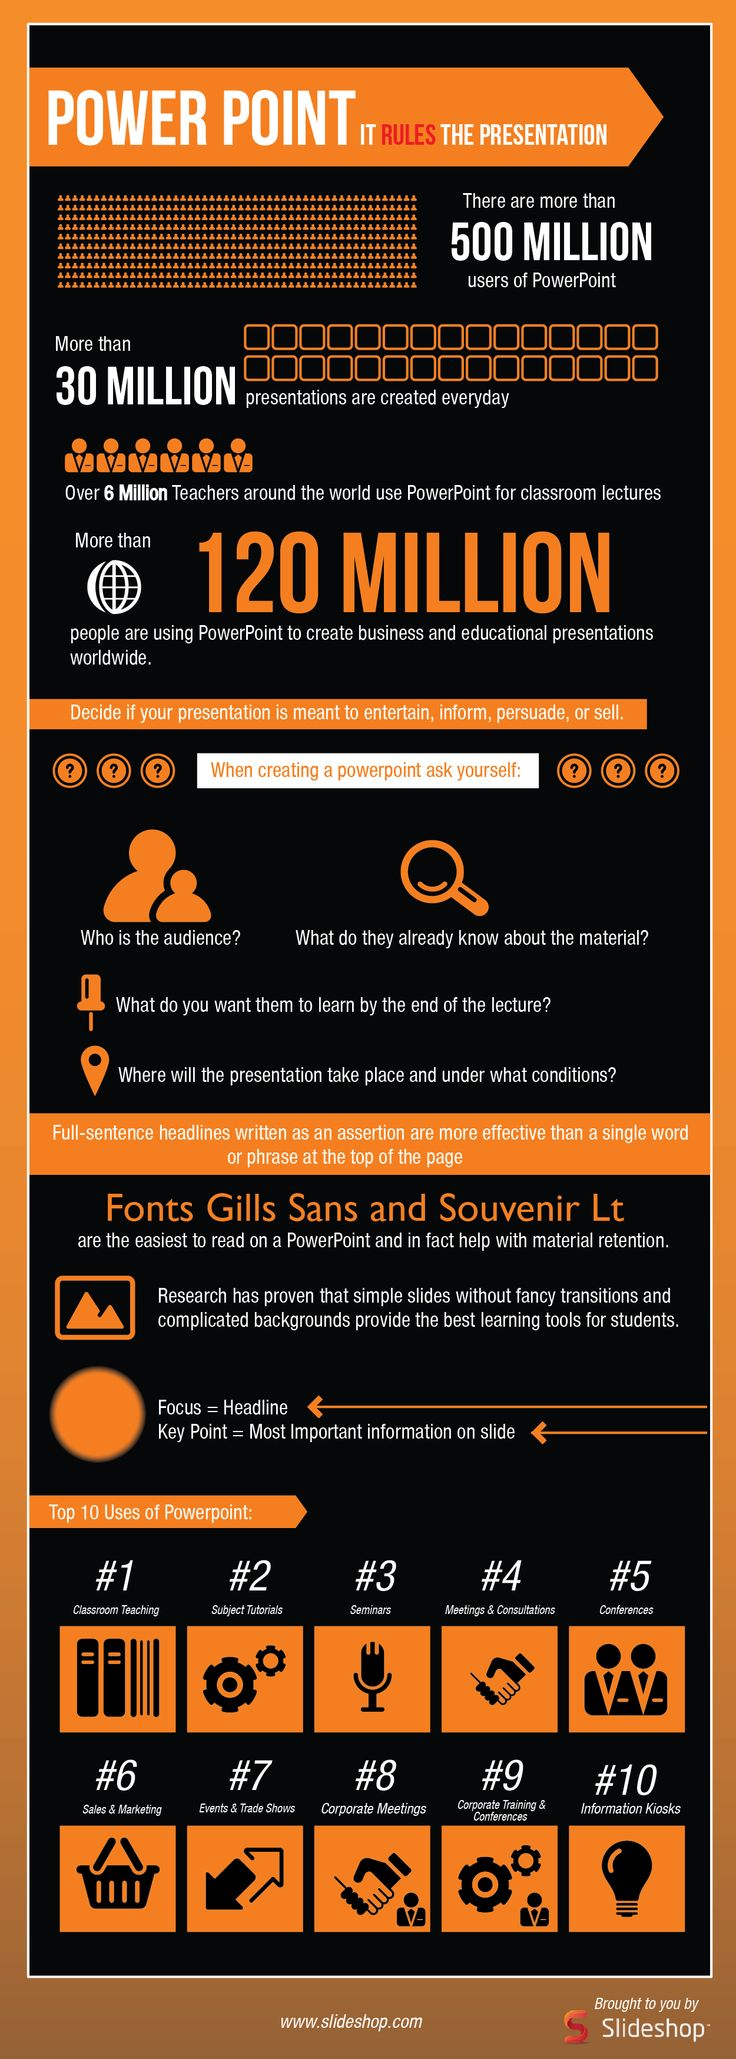 PowerPoint it rules the presentation #infographic